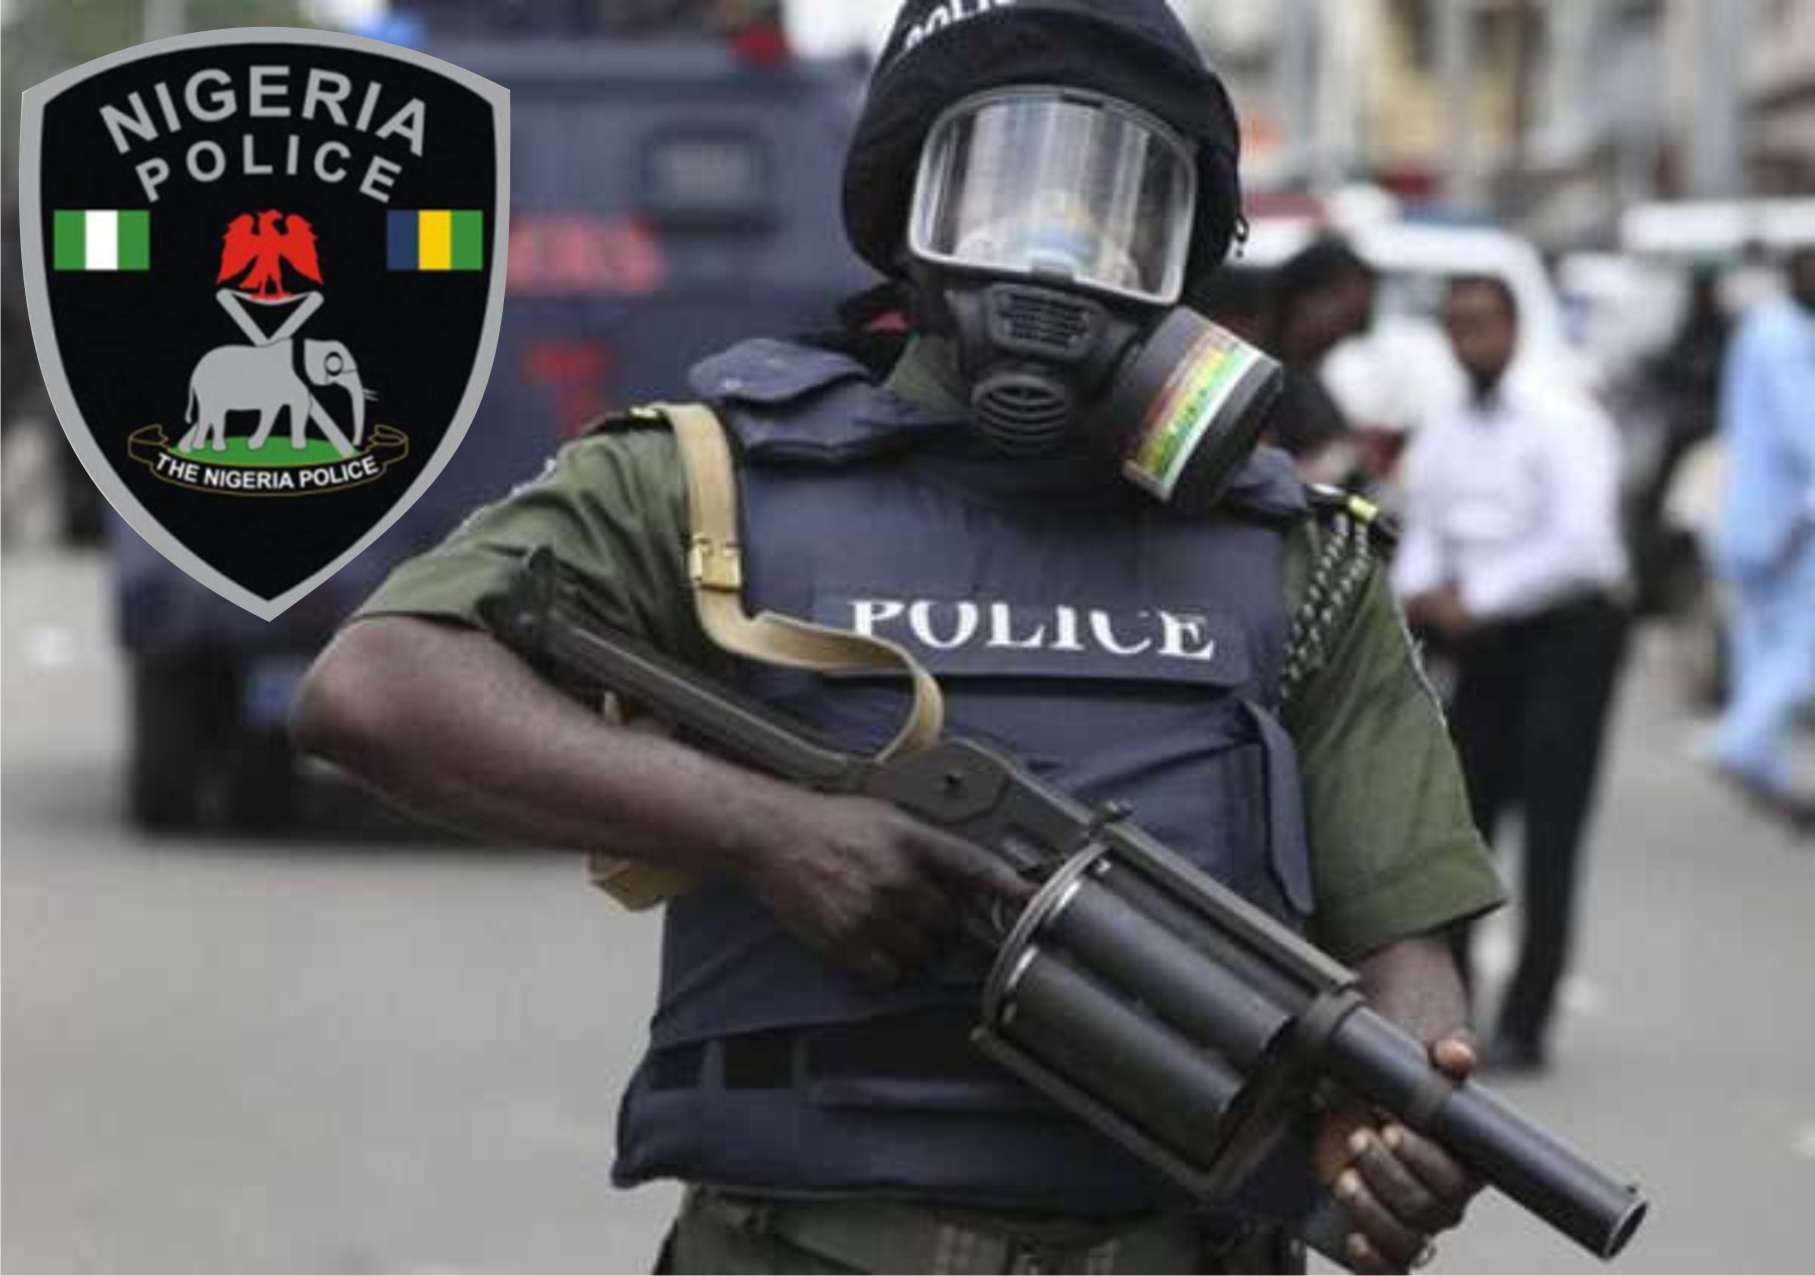 Nigerians reject SWAT as SARS replacement